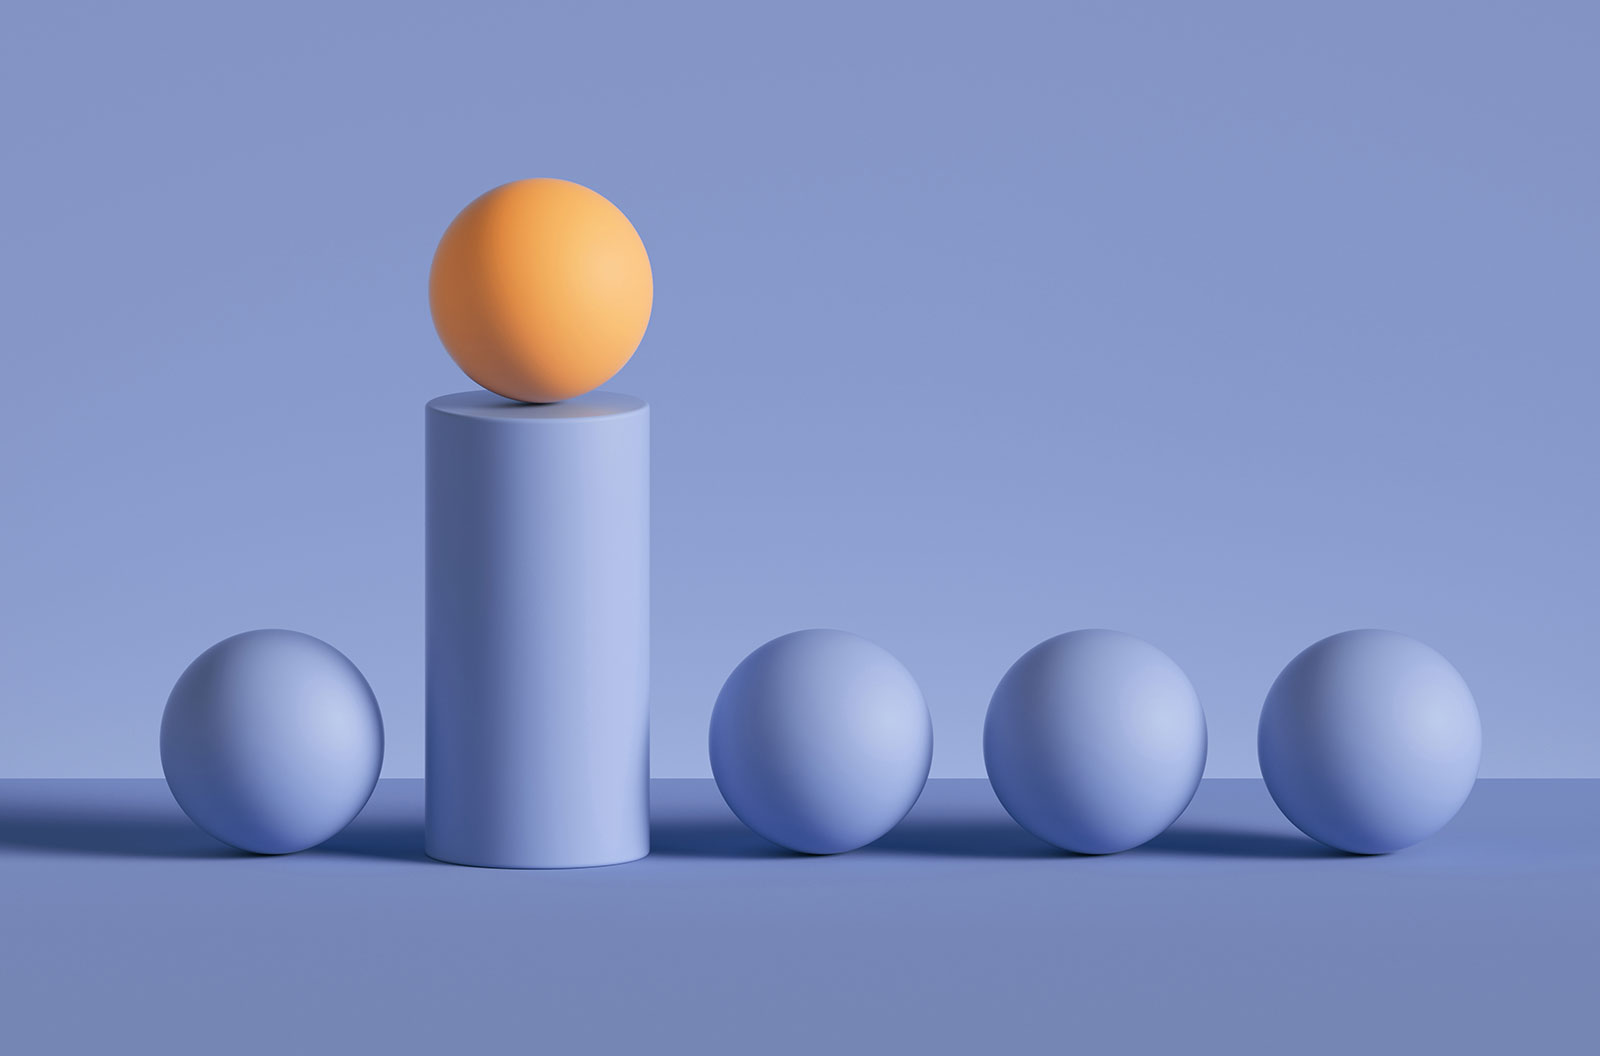 3D rendered abstract image of a yellow ball placed on a purple cylinder podium